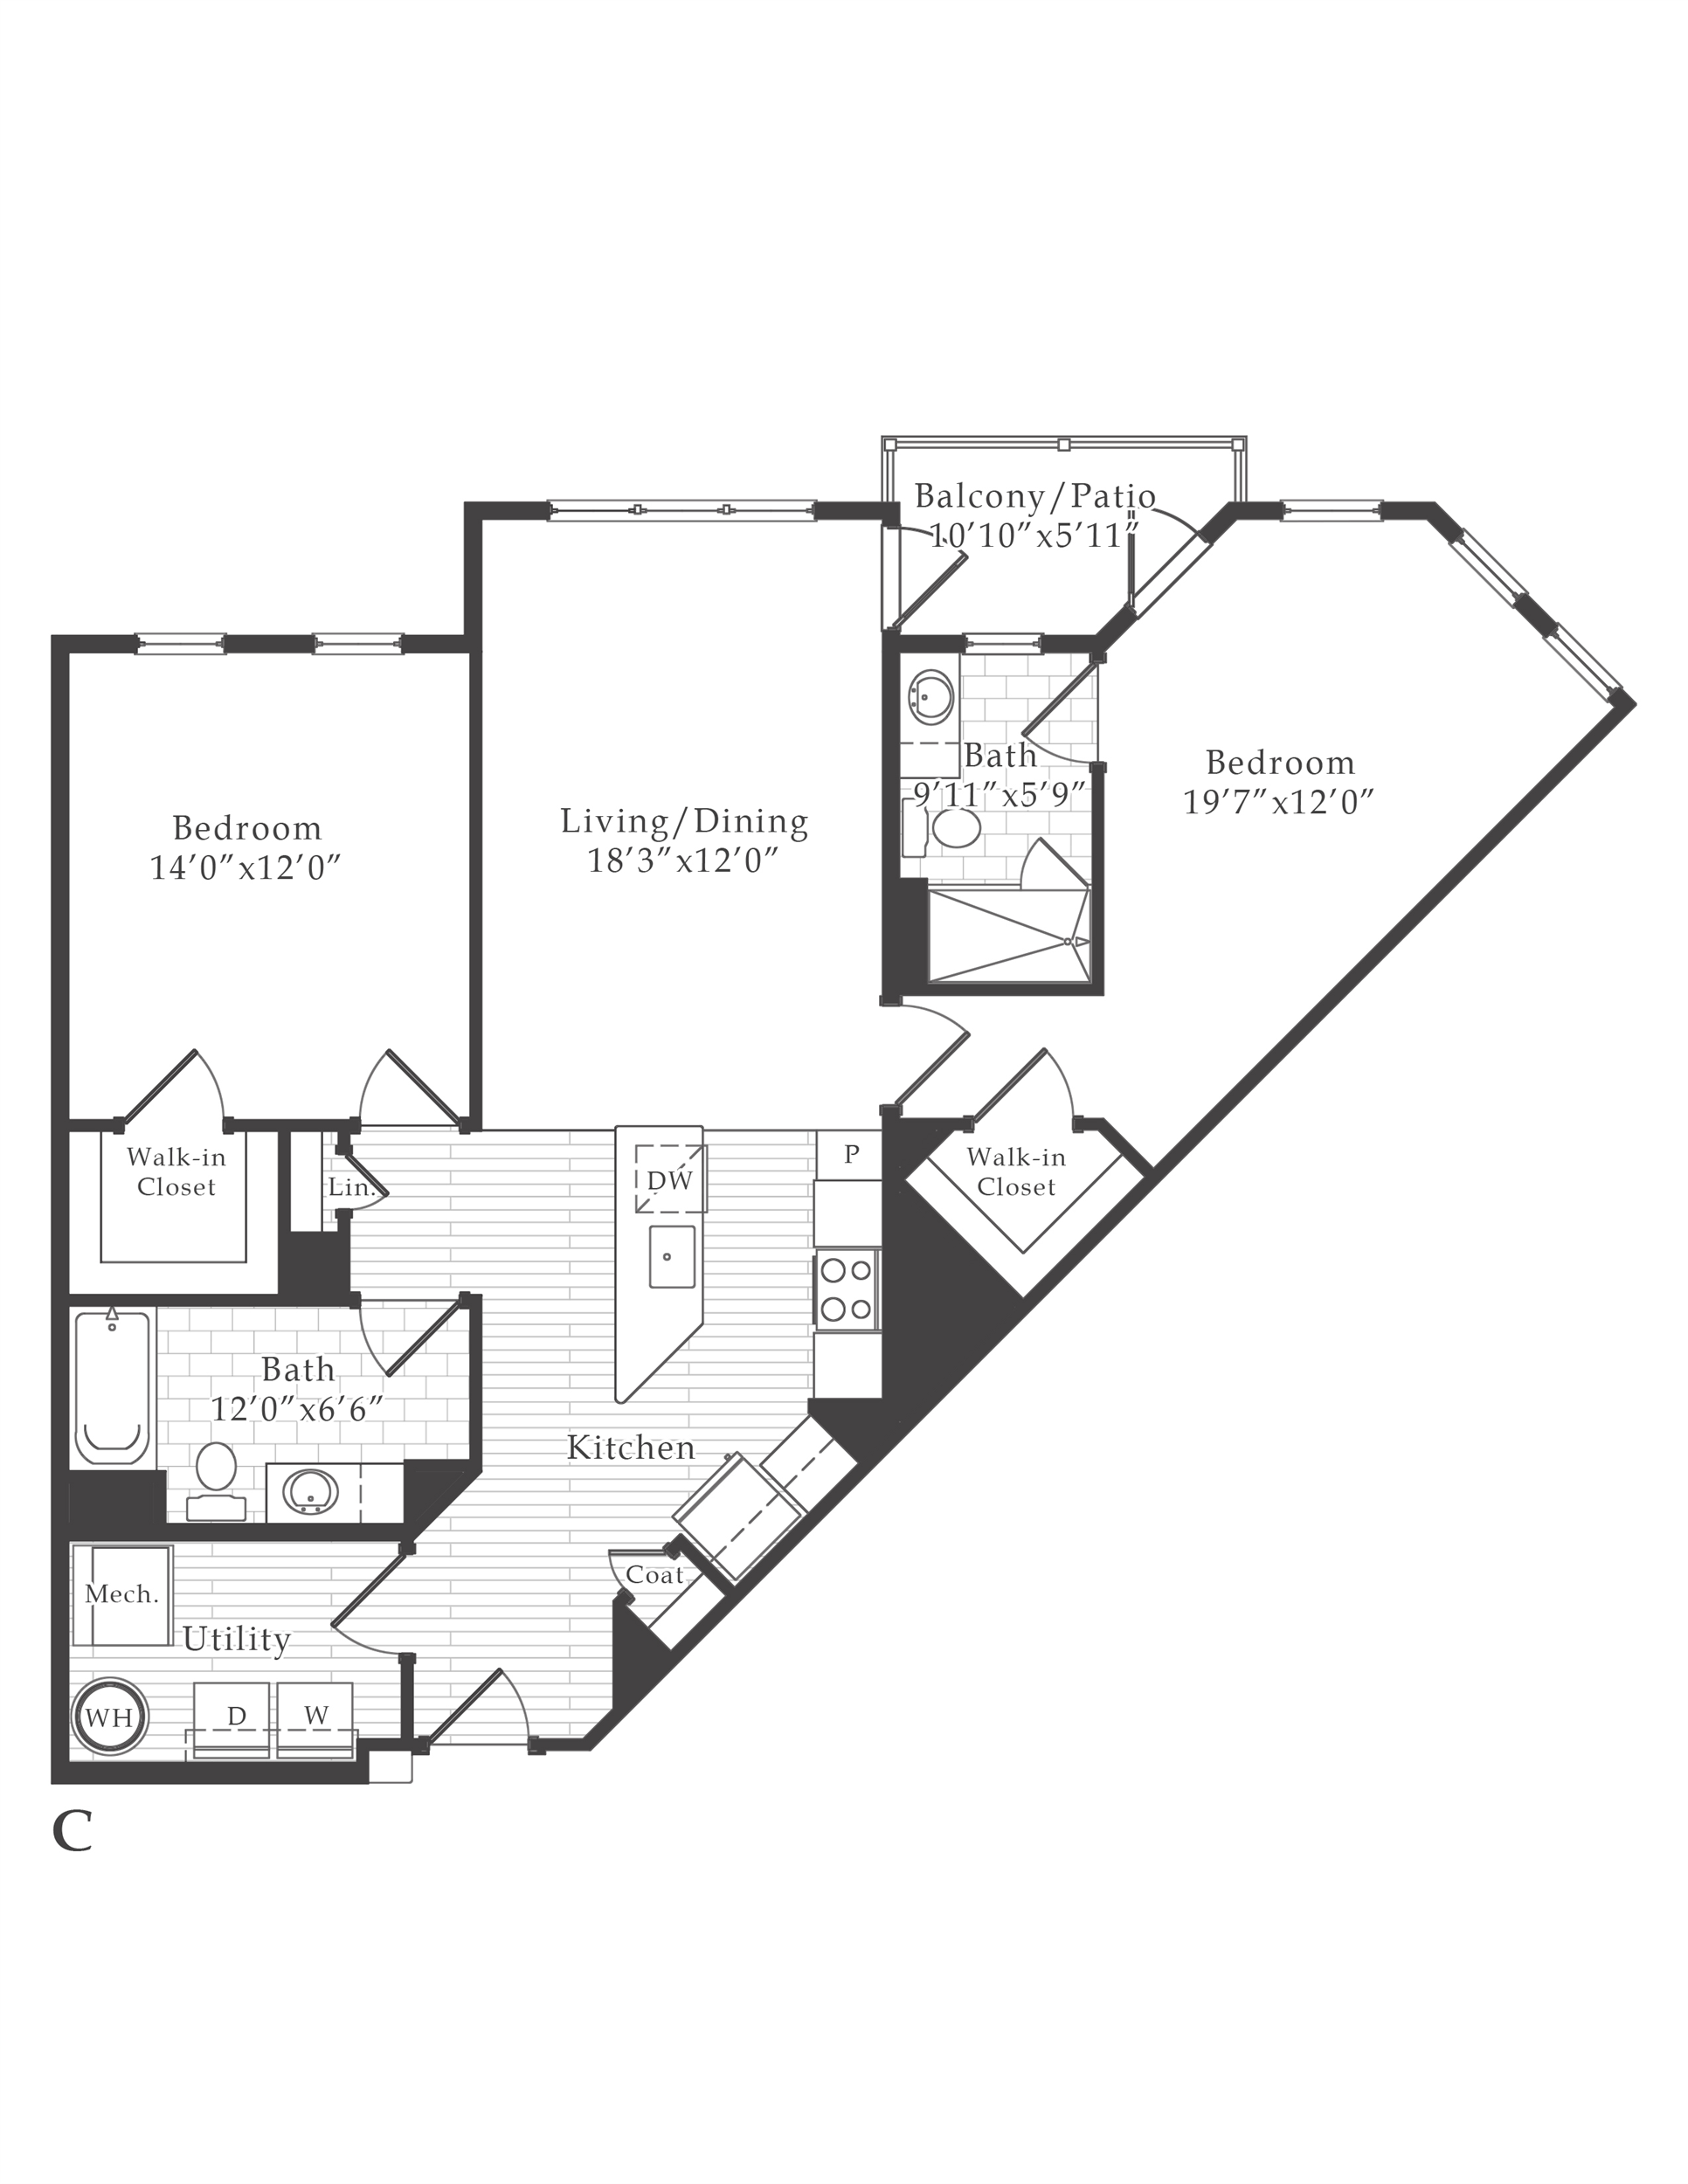 816bc08 md laurel thevine p0637686 vinec1191 2 floorplan